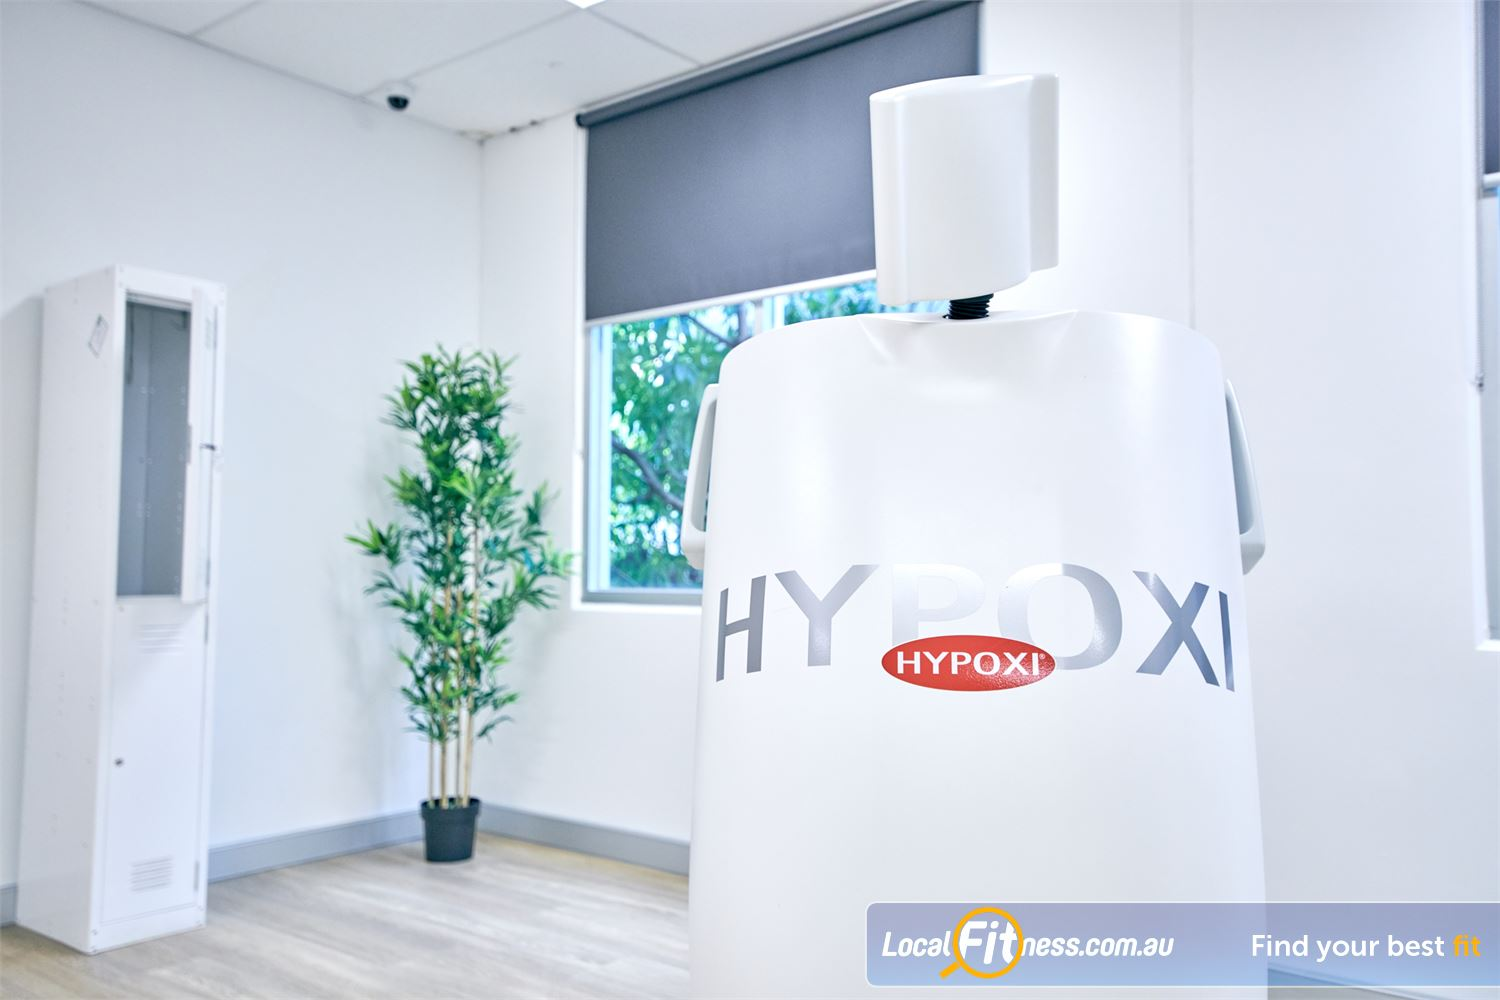 HYPOXI Weight Loss Near Burwood East Help your body work smarter, not harder in our HYPOXI Glen Waverley weight loss studio.